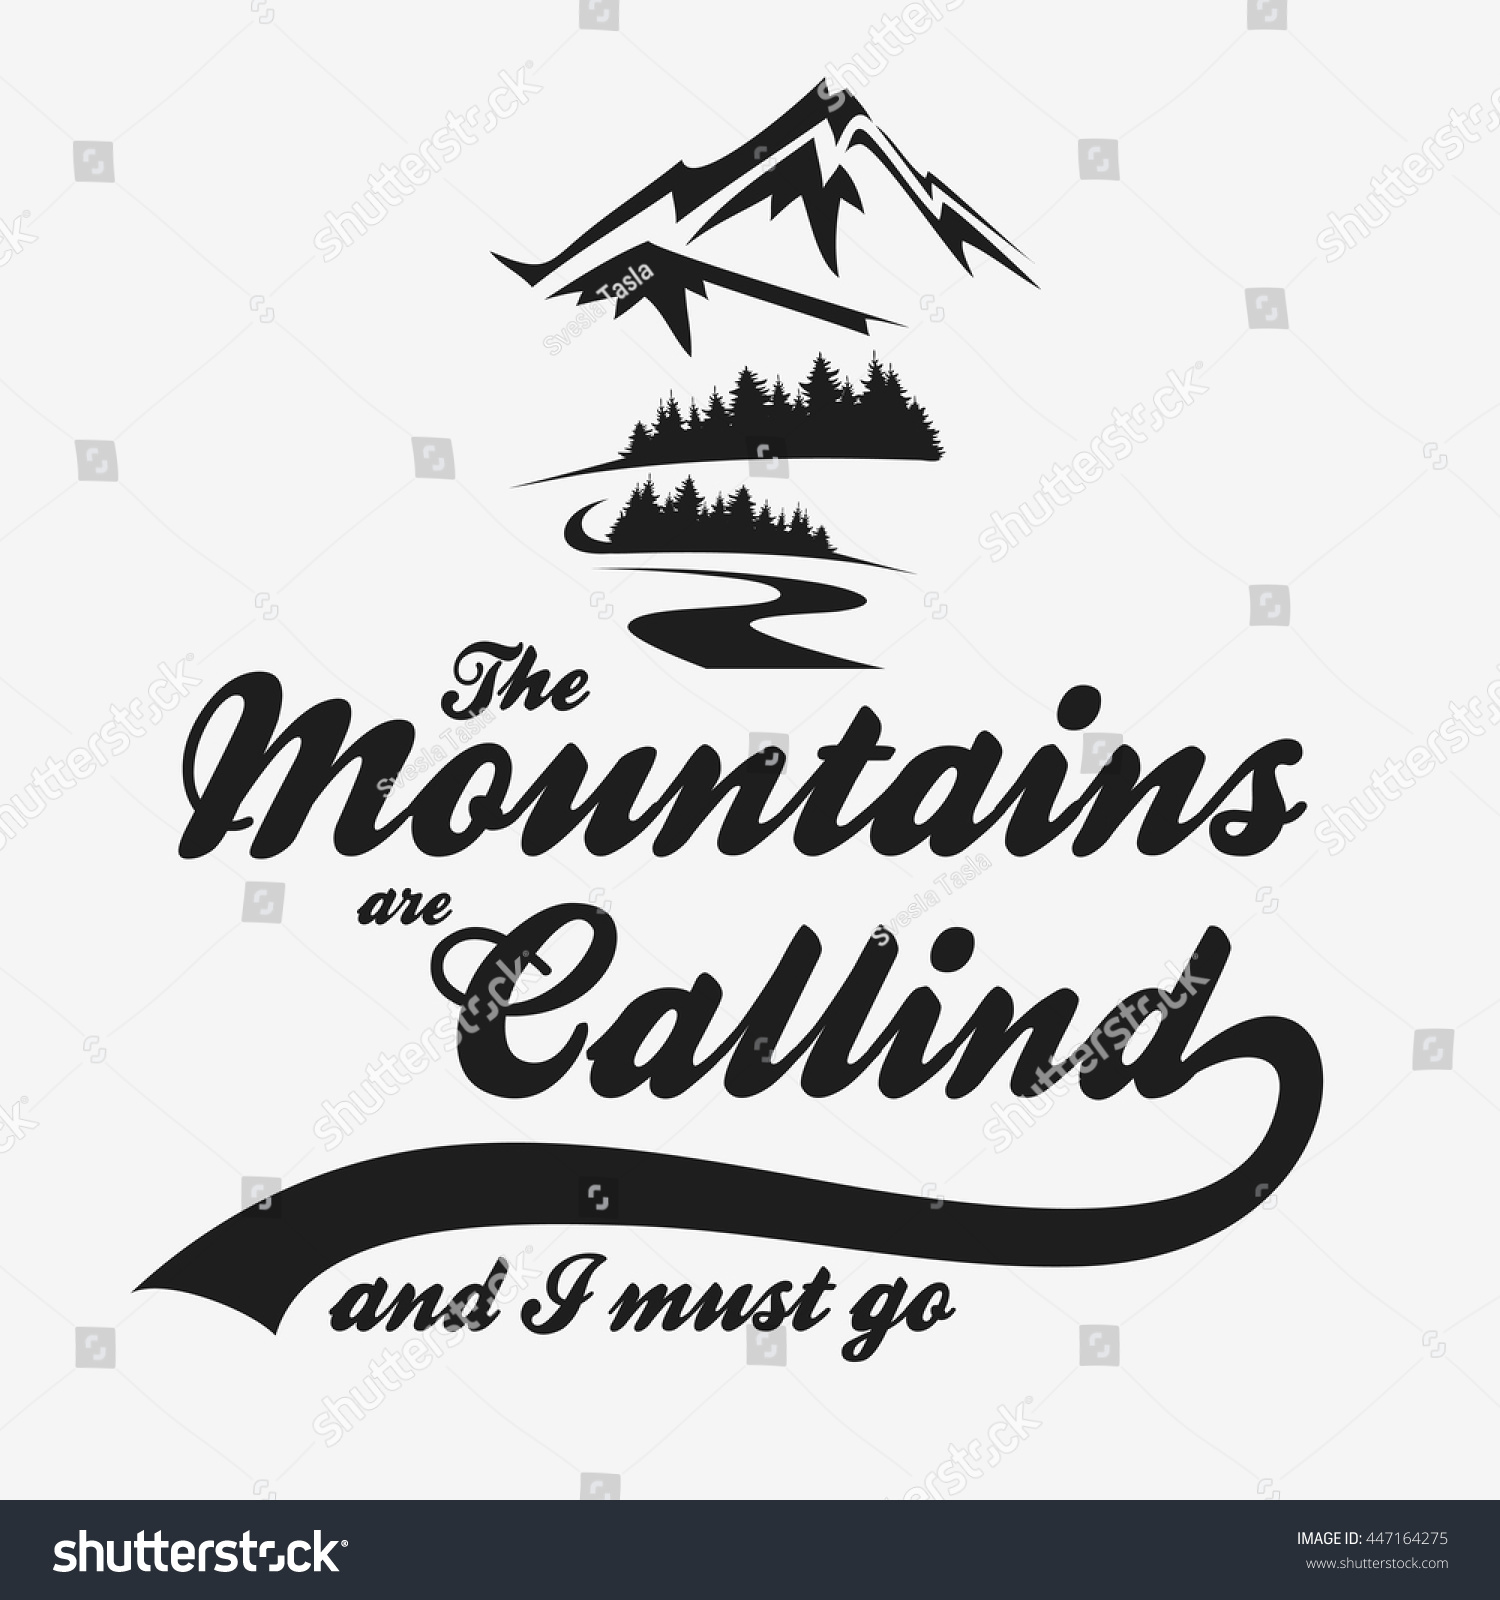 Mountains calling must go hand drawn stock vector for The mountains are calling and i must go metal sign